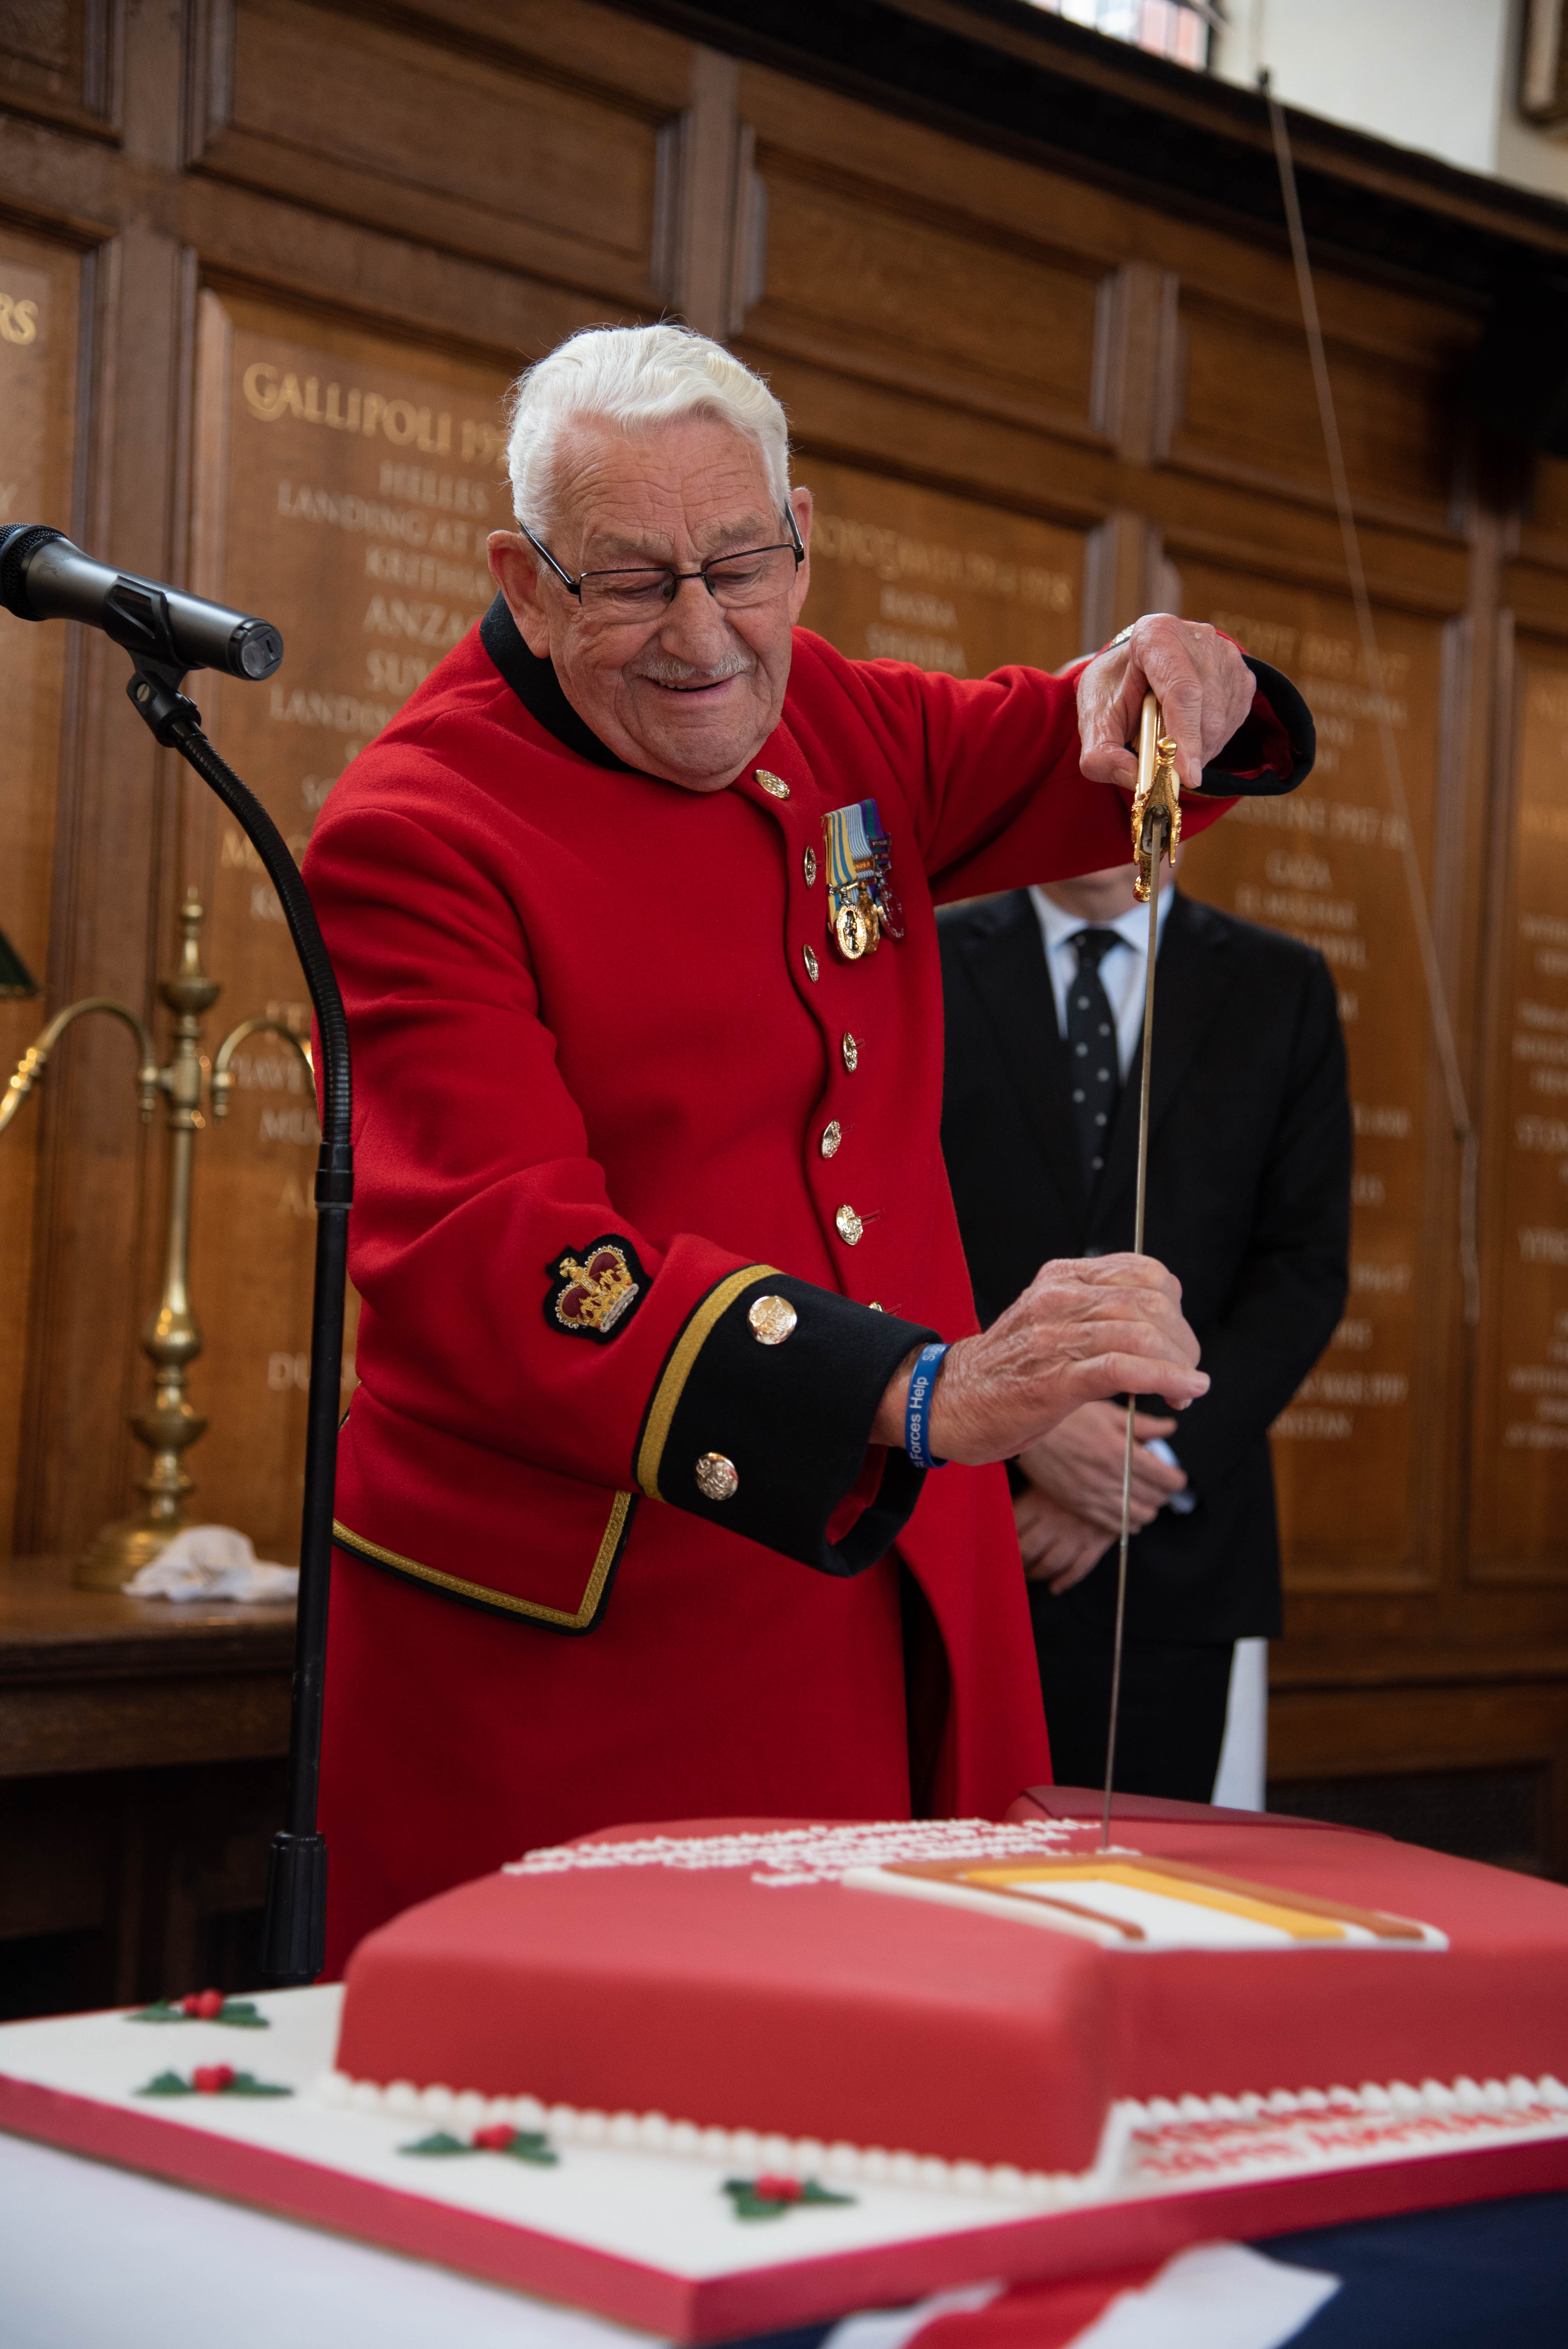 Chelsea Pensioner Arthur cutting the cake